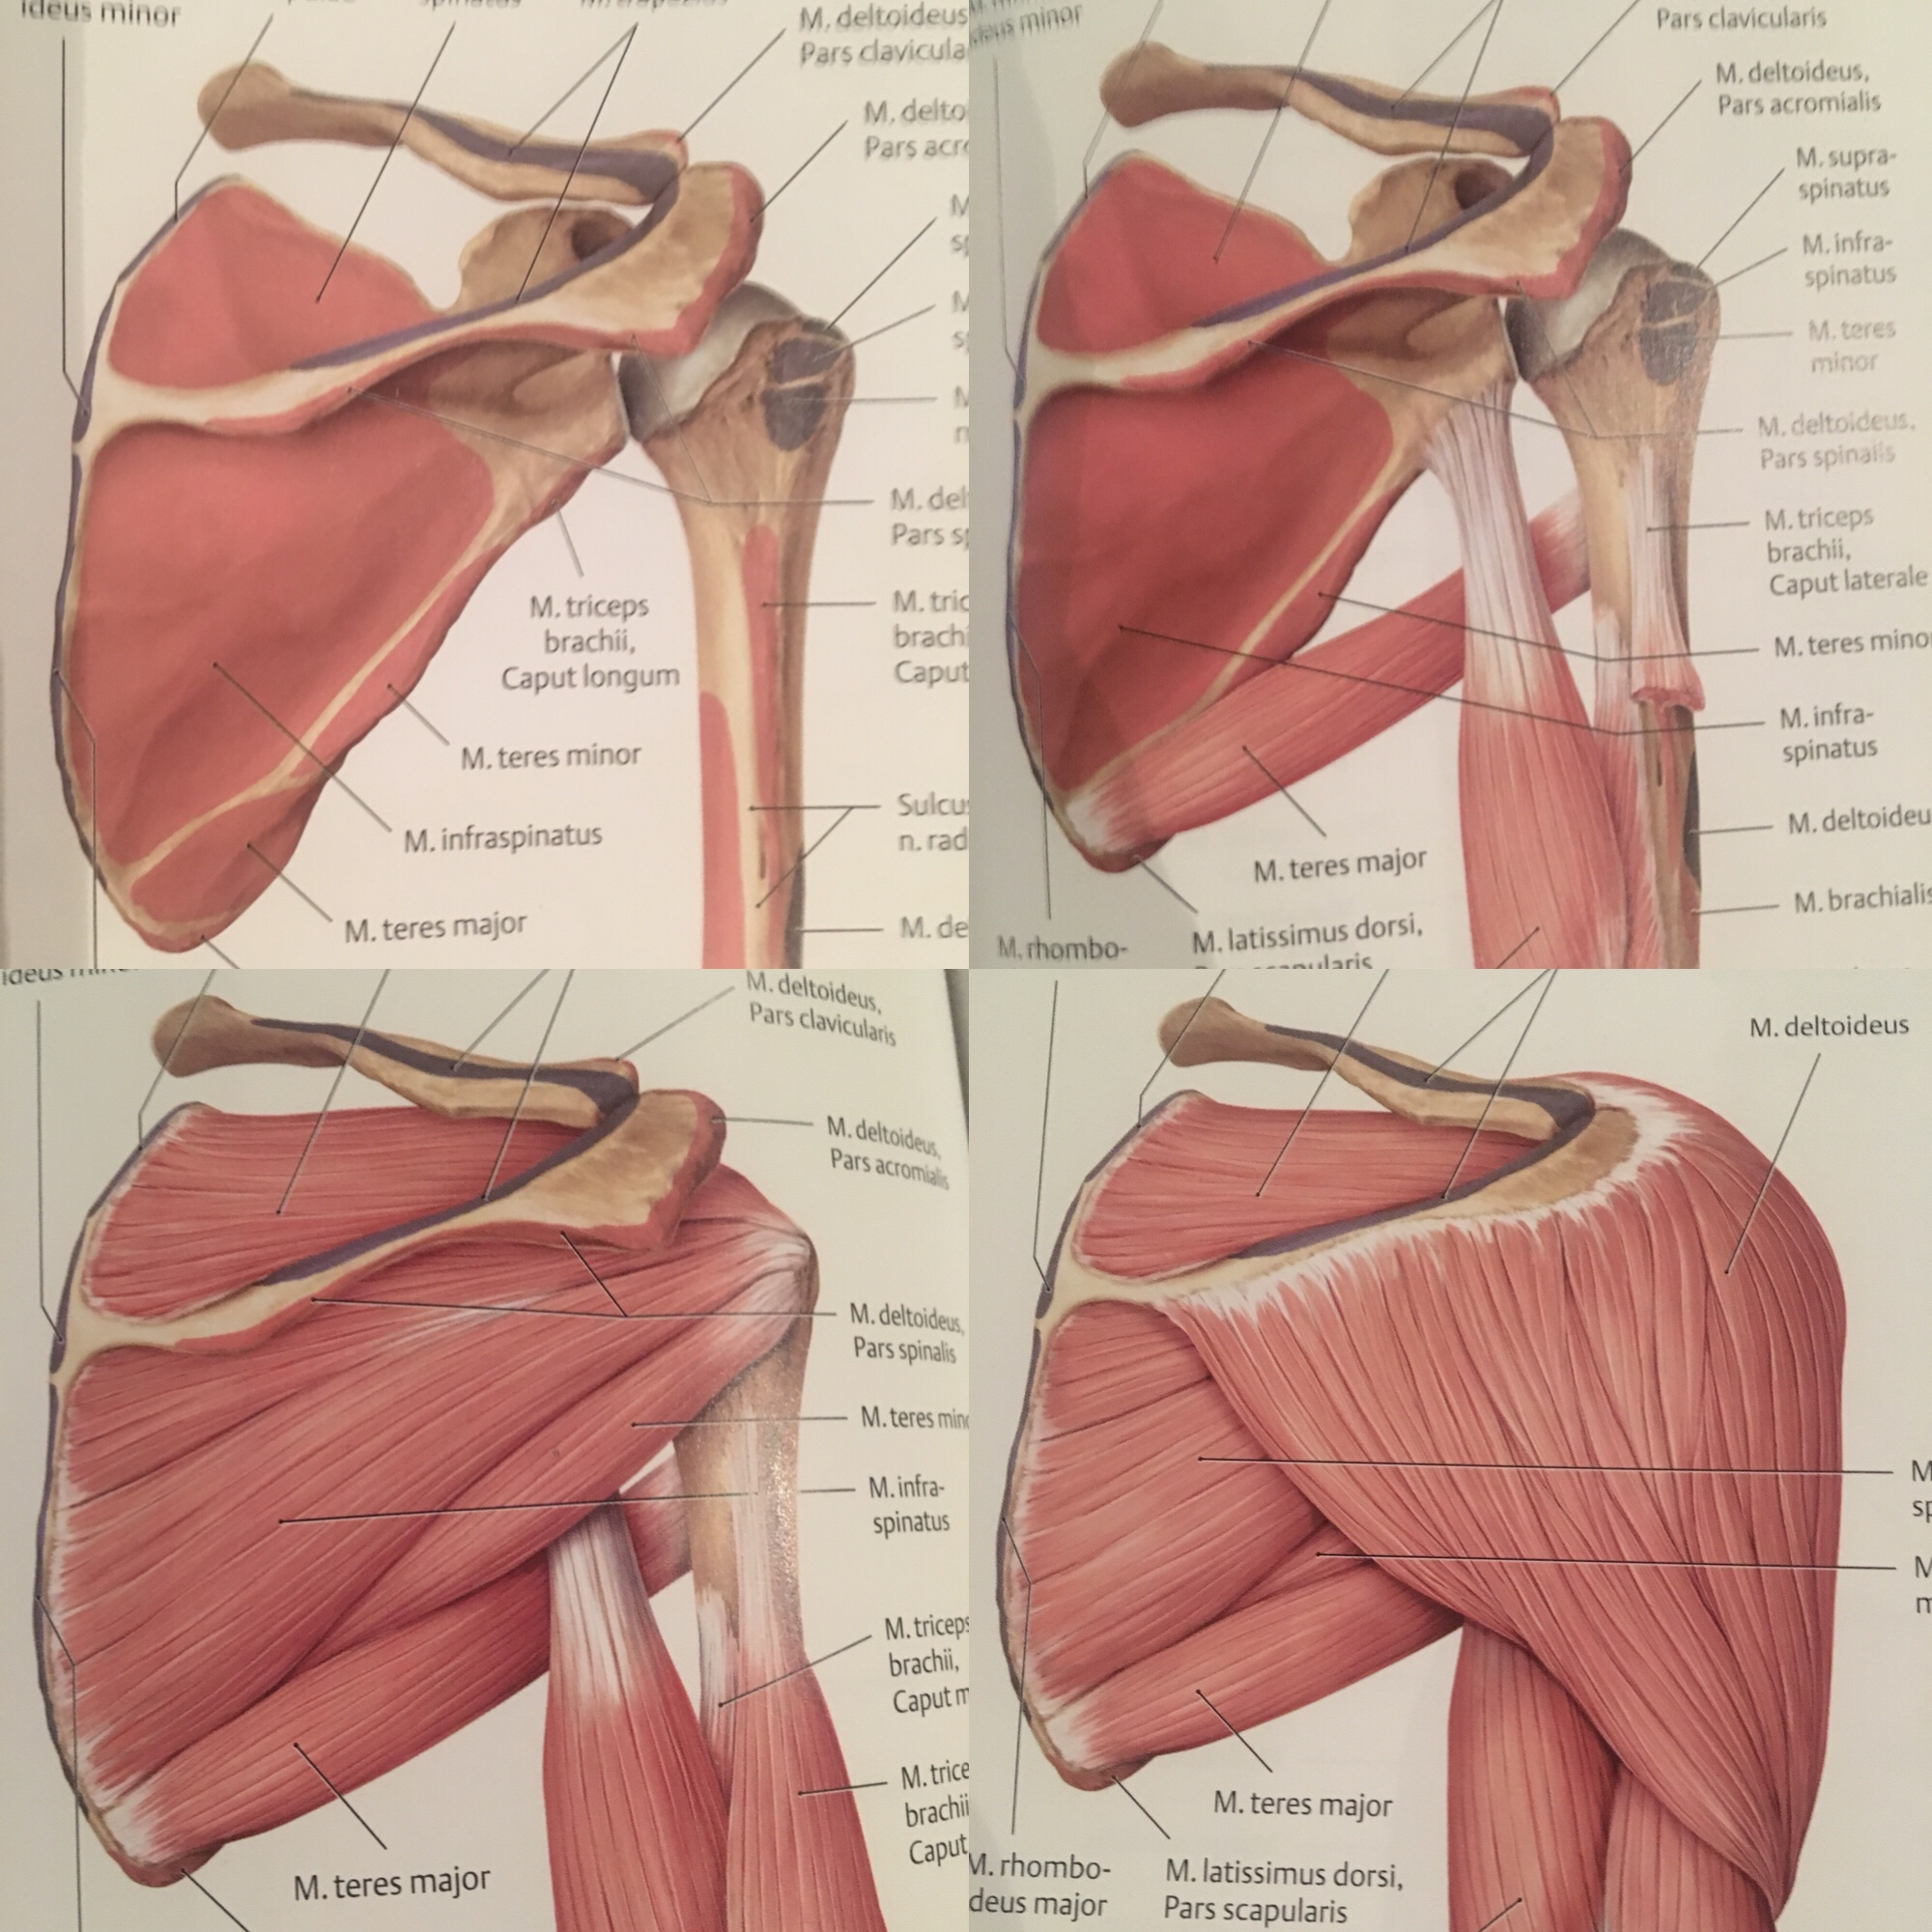 teres major, infraspinatus, lapaluu, hartia,